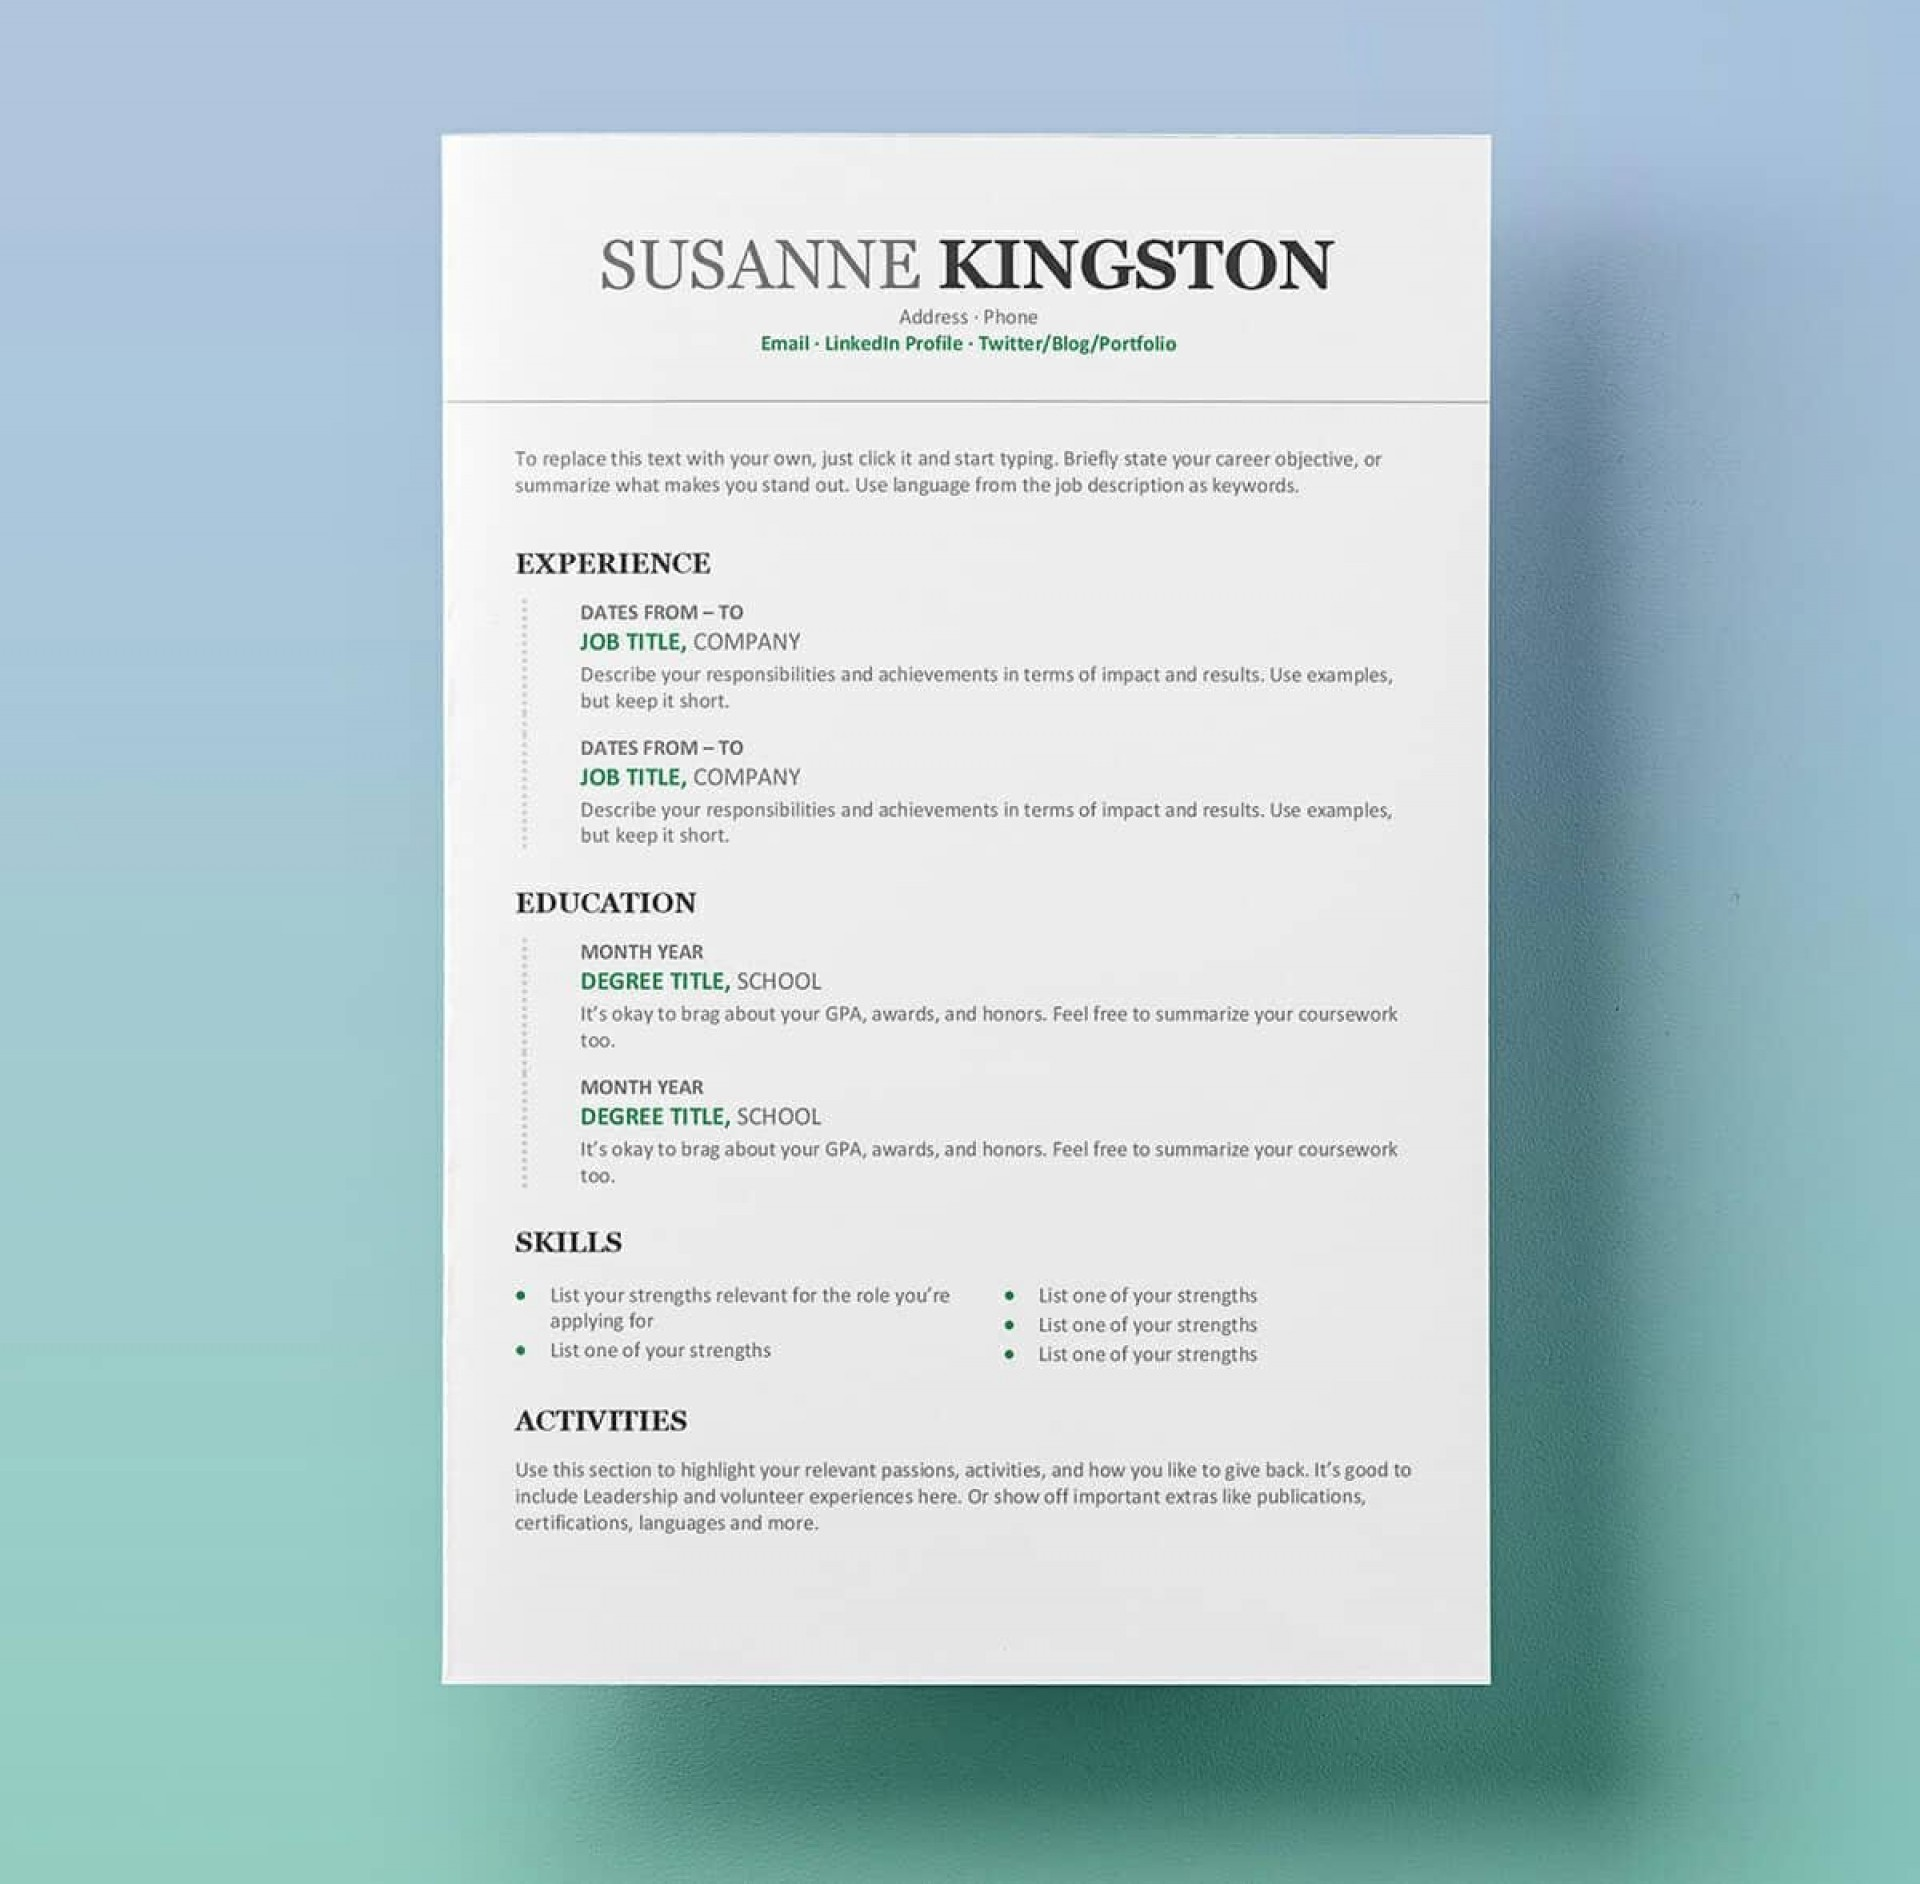 008 Archaicawful Resume Template Free Word Design  Download Cv 2020 Format1920